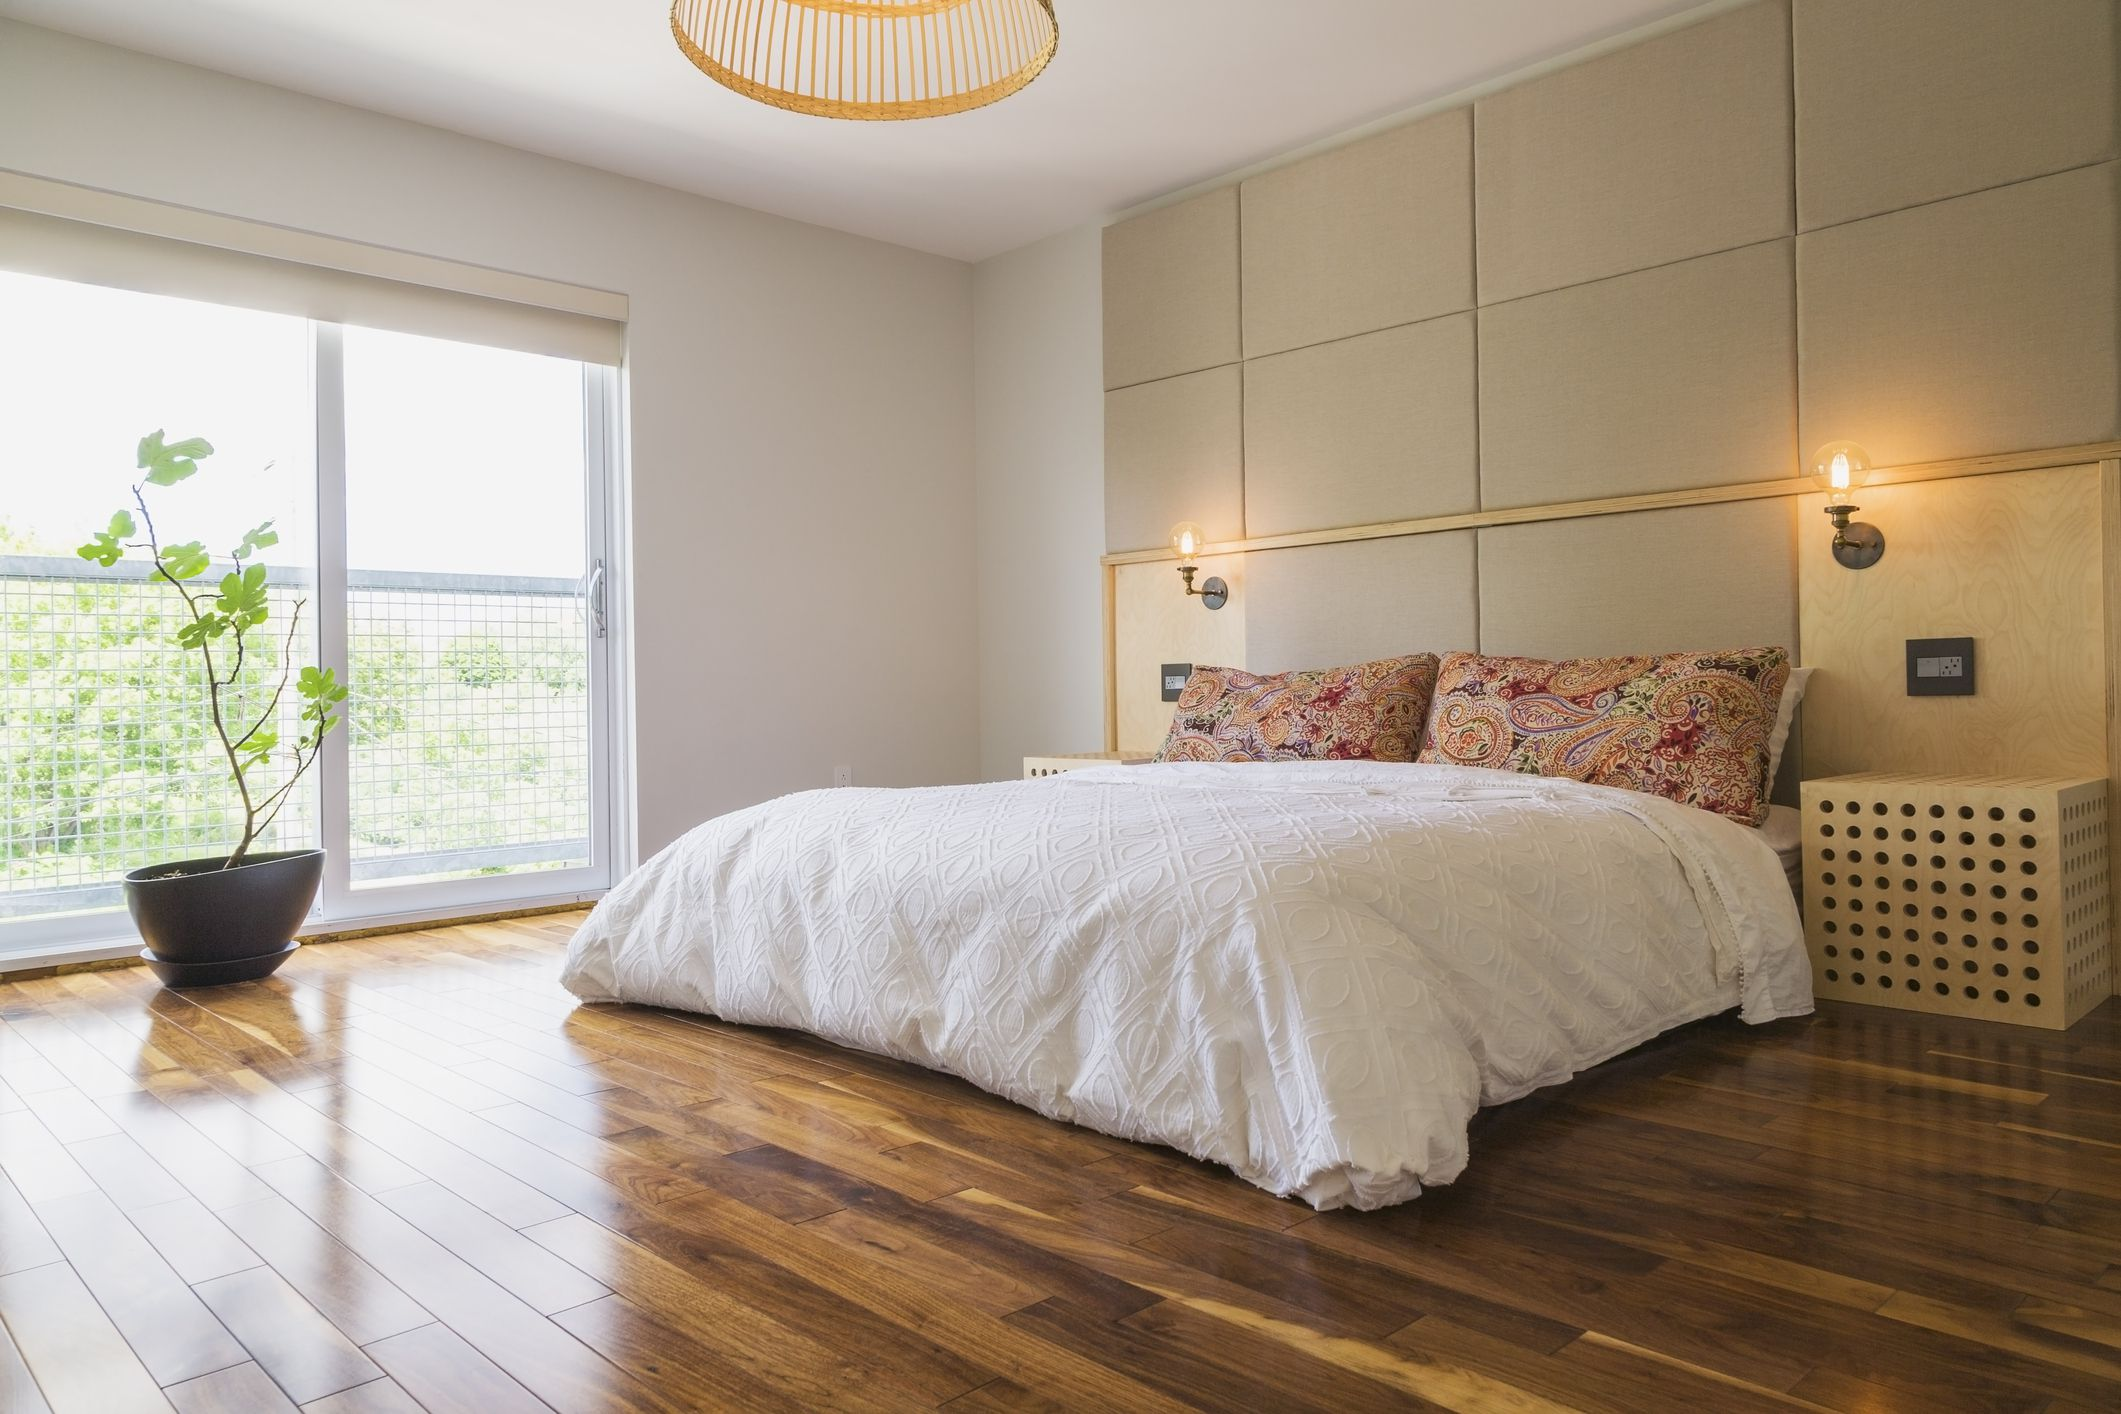 how to feng shui your bedroom 20747 | gettyimages 702551757 5ae247c68e1b6e0037c97e4e